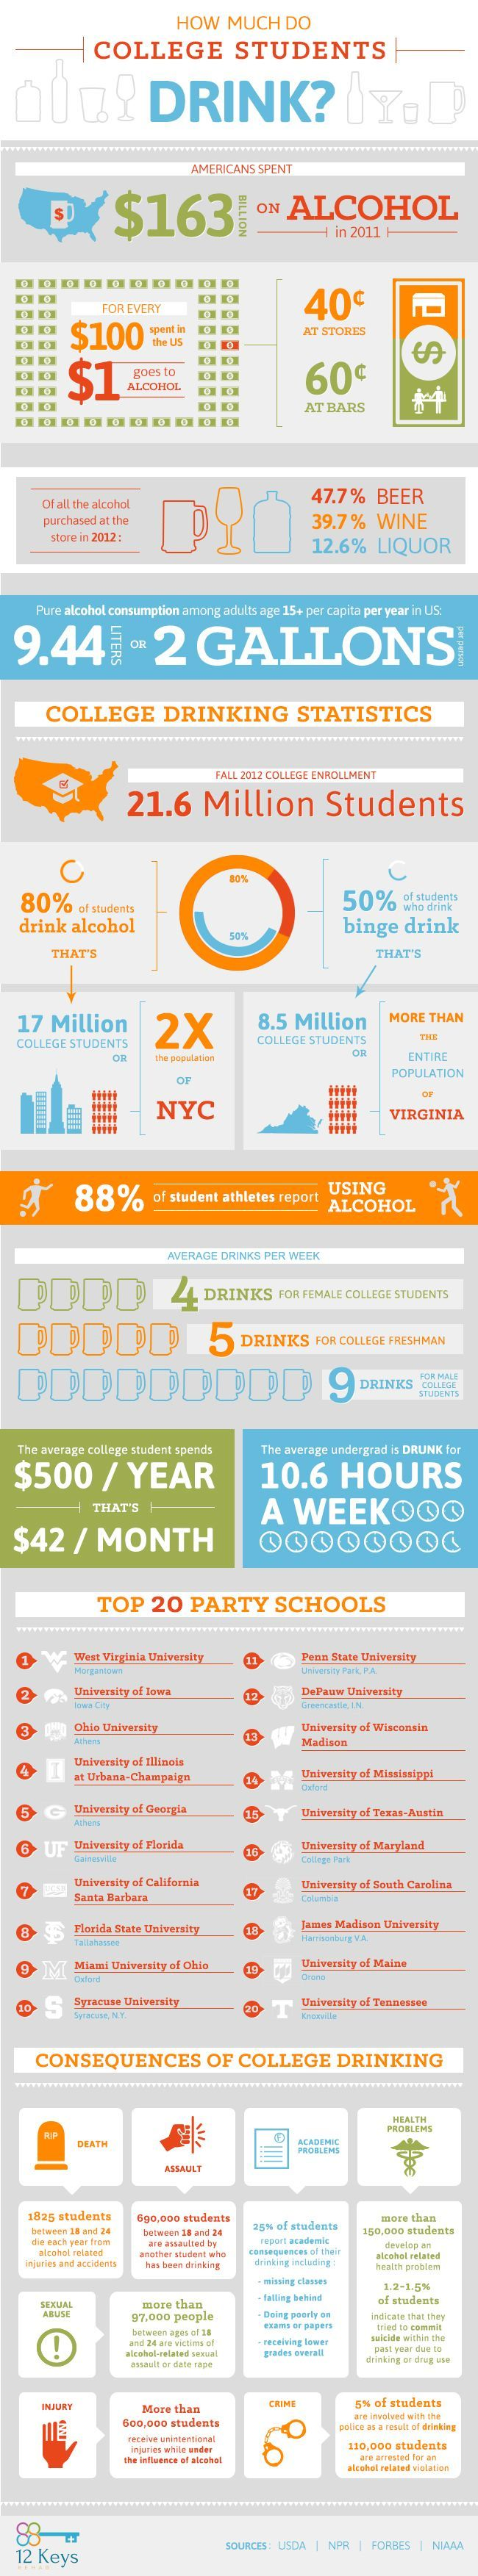 How Much Do #College Students Drink?: An #Infographic #bingedrinking: